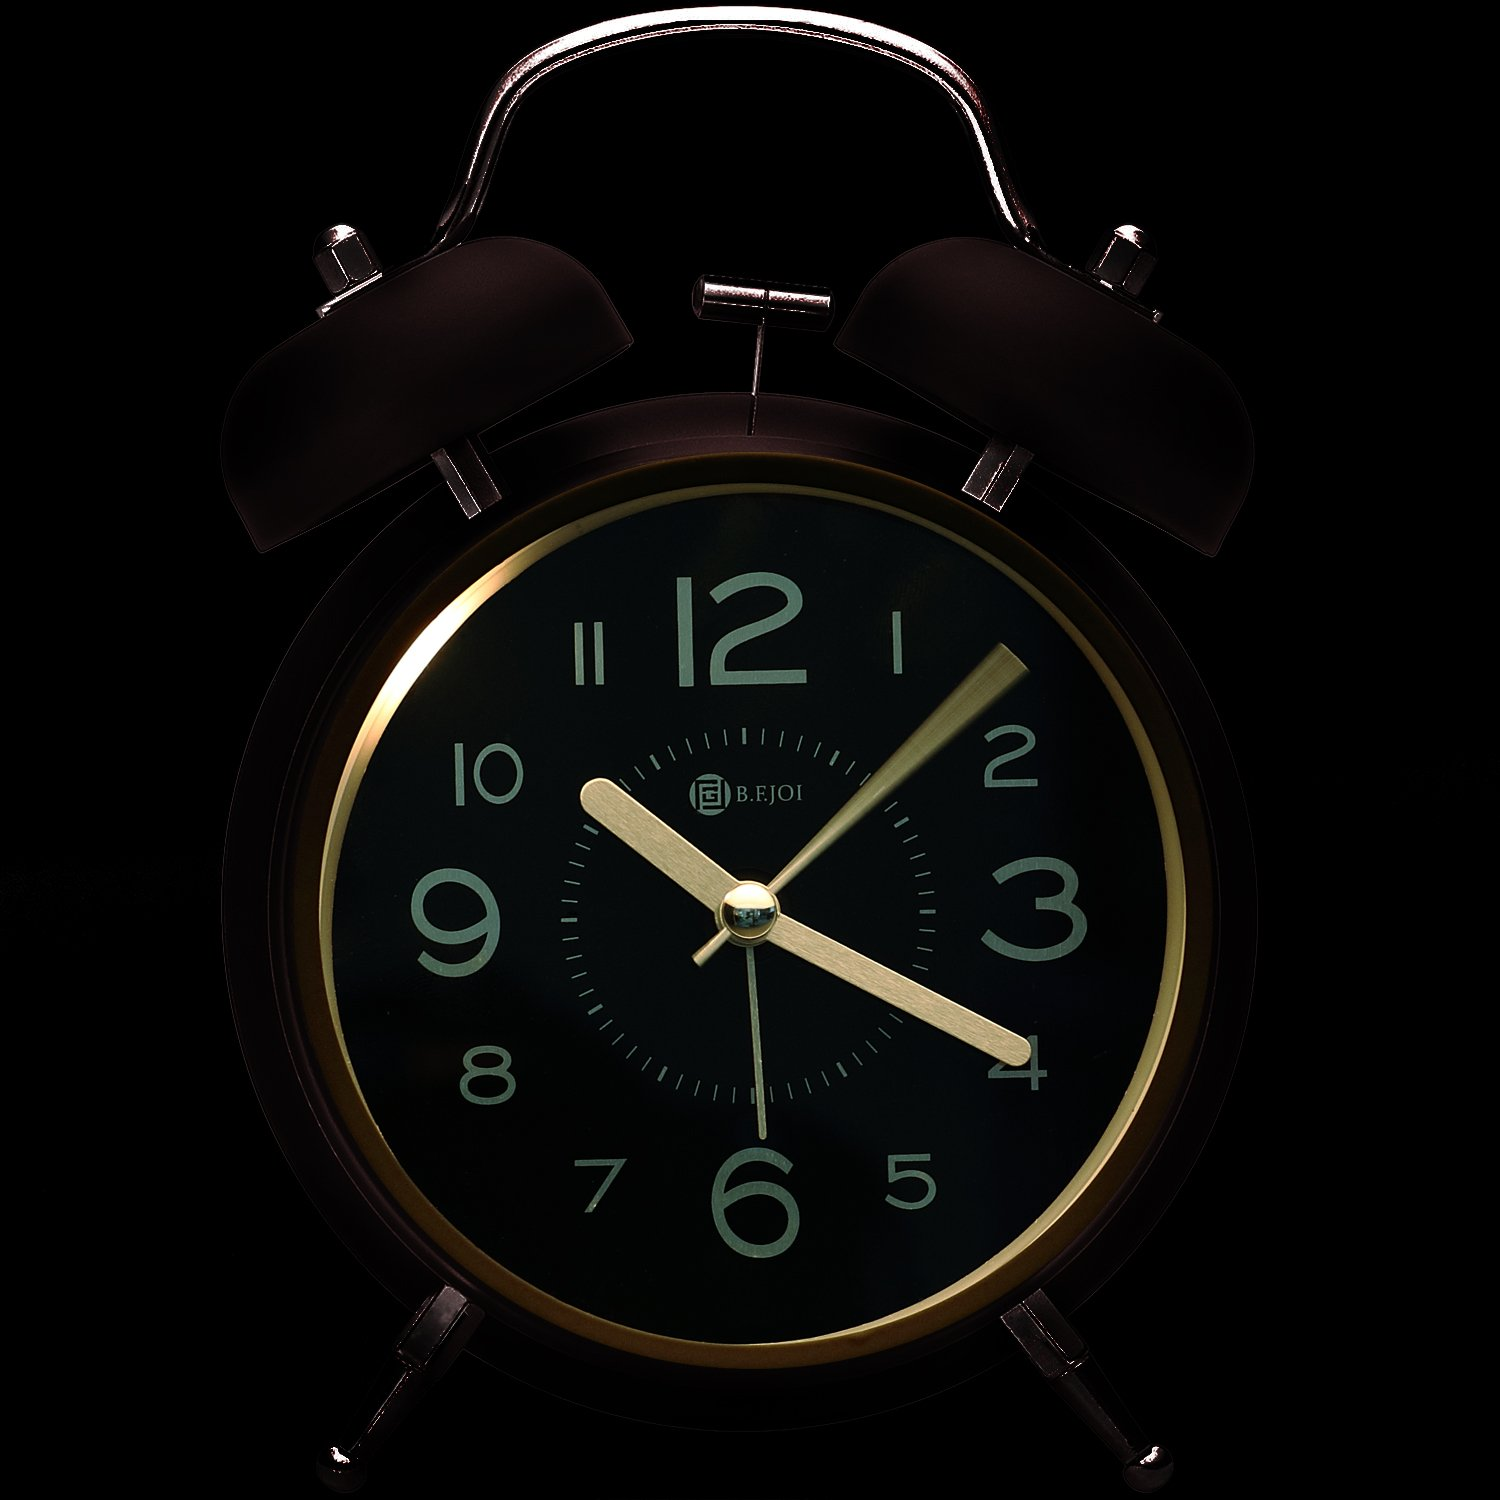 4'' Twin Bell Alarm Clock with Metal Dial, Nightlight, No Ticking Battery Operated Loud Alarm Clock for Bedroom (Black) by B.F.JOI (Image #7)